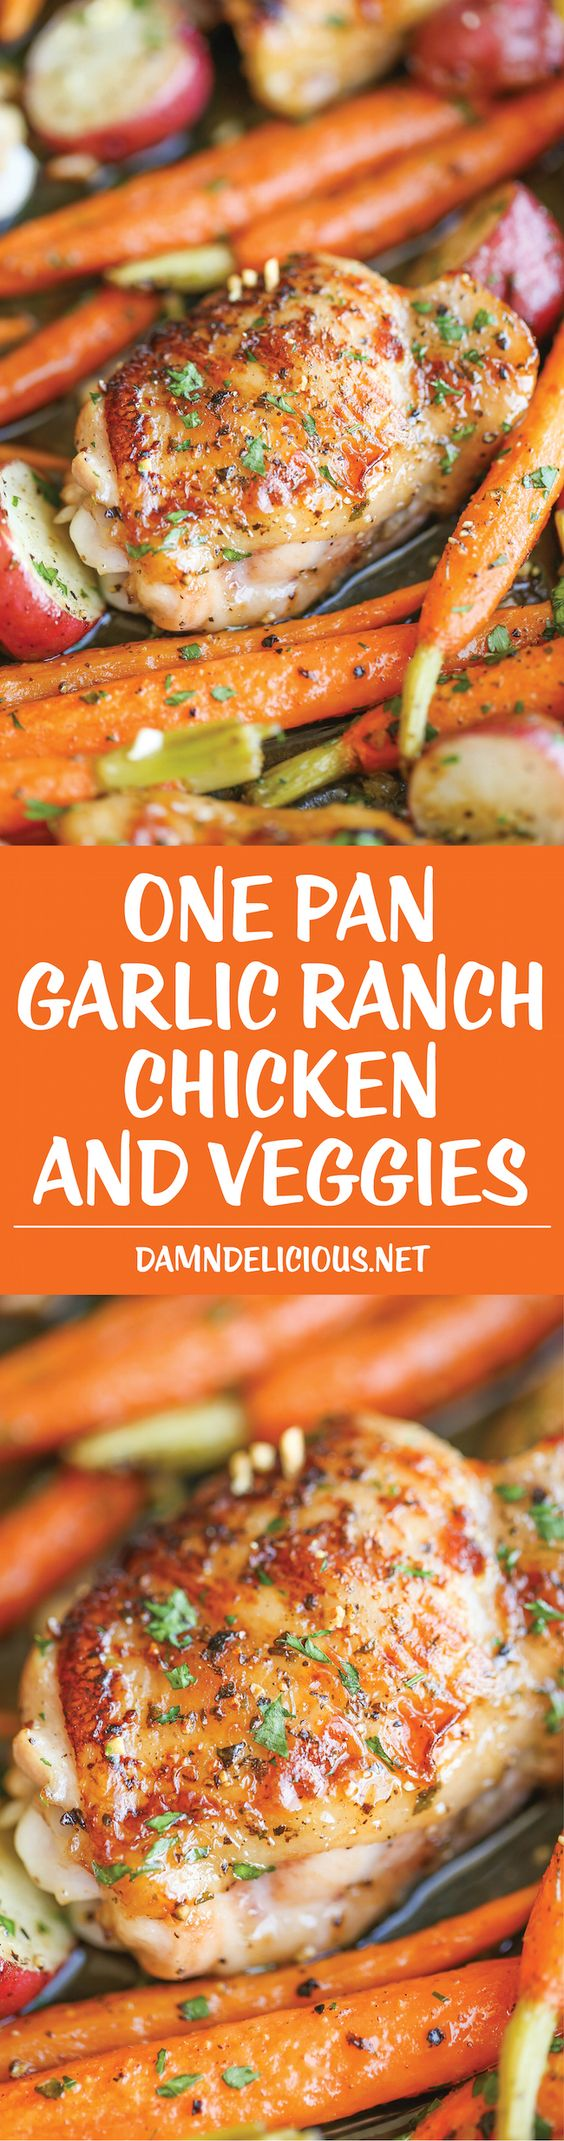 One Baking Sheet Pan Garlic Ranch Chicken and Veggies Recipe via Damn Delicious - Crisp-tender chicken baked to absolute perfection with roasted carrots and potatoes - all cooked in a single baking sheet pan! #sheetpansuppers #sheetpanrecipes #sheetpandinners #onepanmeals #healthyrecipes #mealprep #easyrecipes #healthydinners #healthysuppers #healthylunches #simplefamilymeals #simplefamilyrecipes #simplerecipes